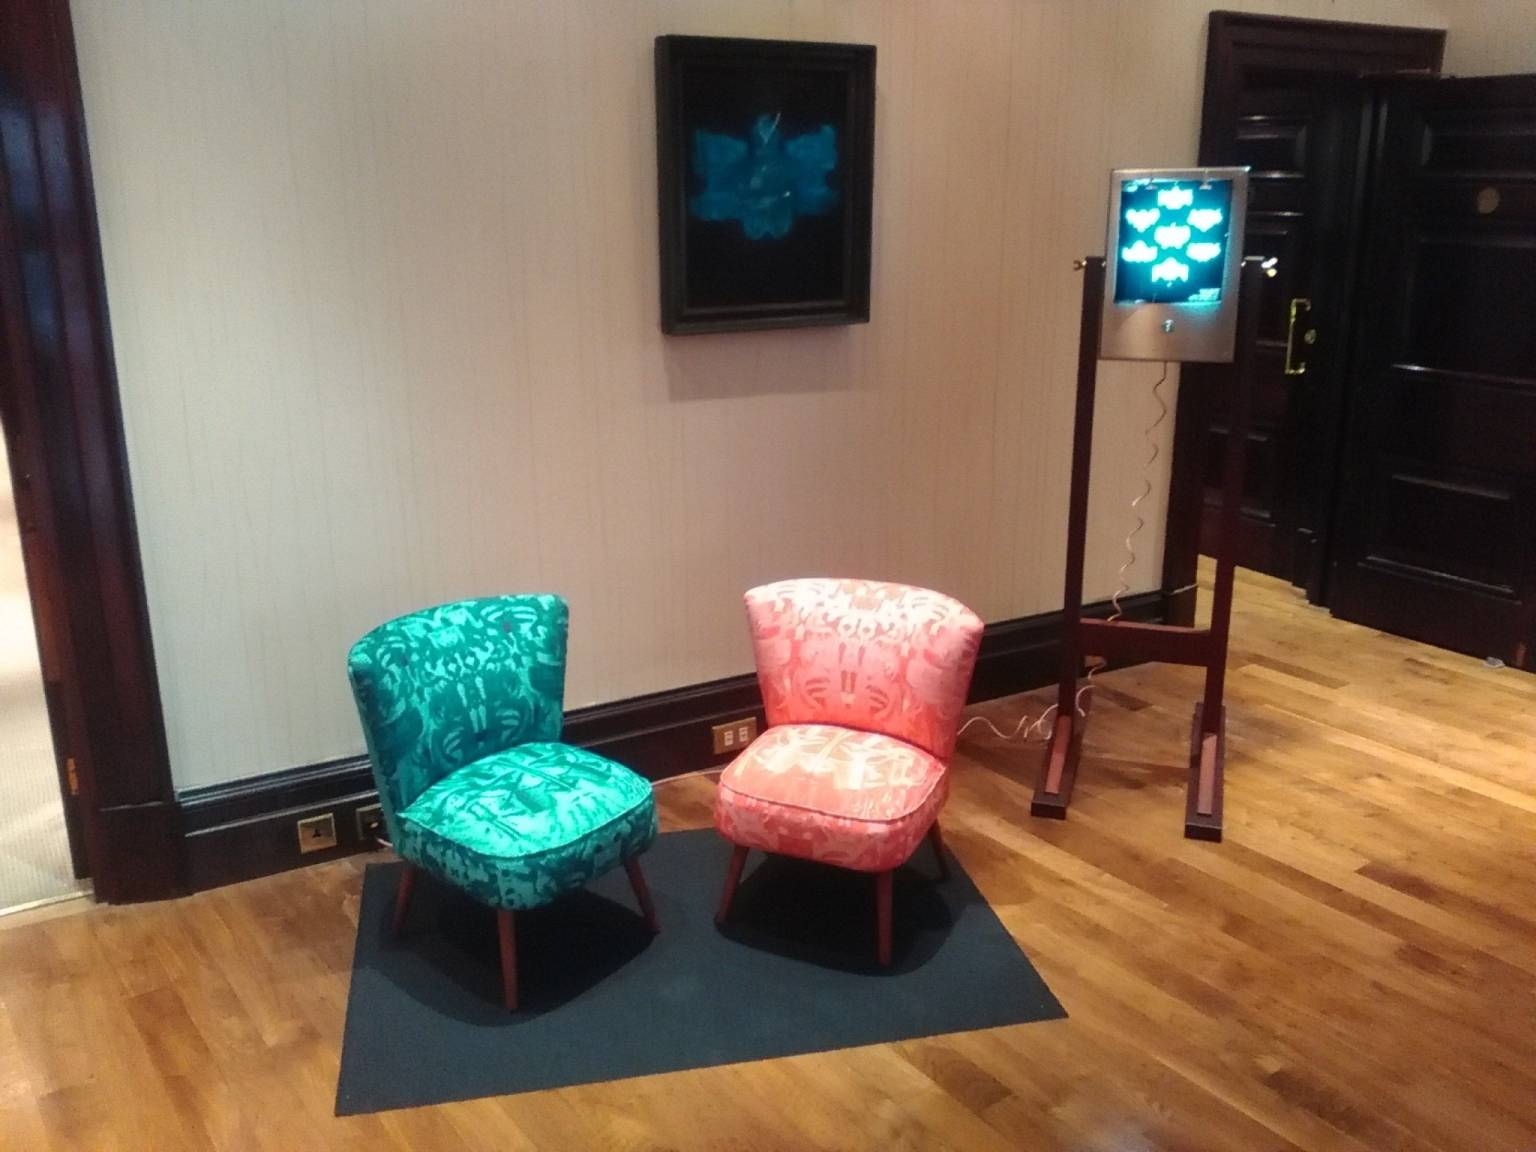 'Kleckztale Chairs', and 'A Study for Above the Shoulders' by Mike Chavez-Dawson and 'Pablo Picasso - Untitled Portrait' by Simon Attard.